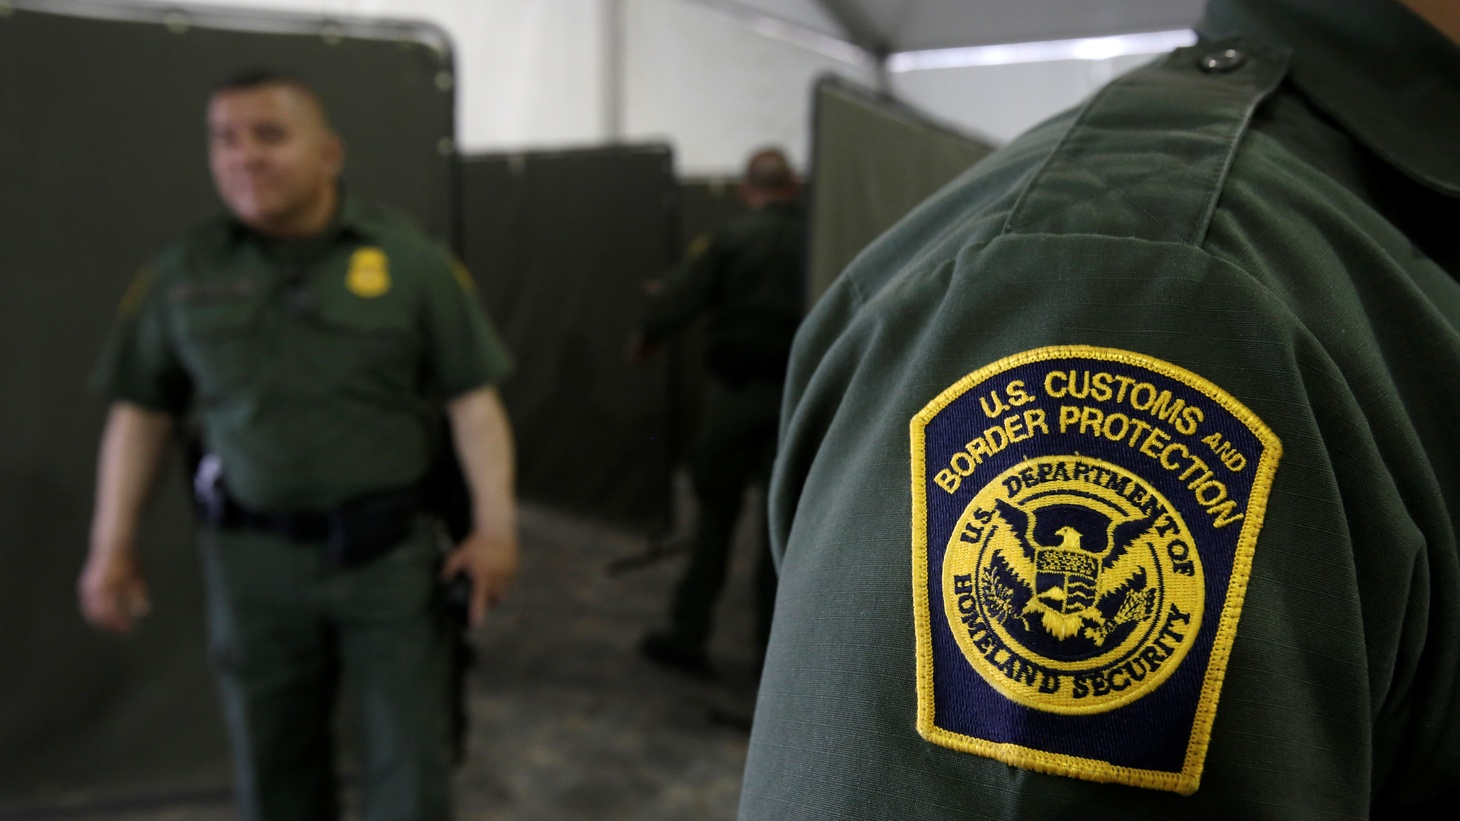 U.S. Border Patrol agents are seen during a tour of U.S. Customs and Border Protection (CBP) temporary holding facilities in El Paso, Texas, U.S., May 2, 2019.